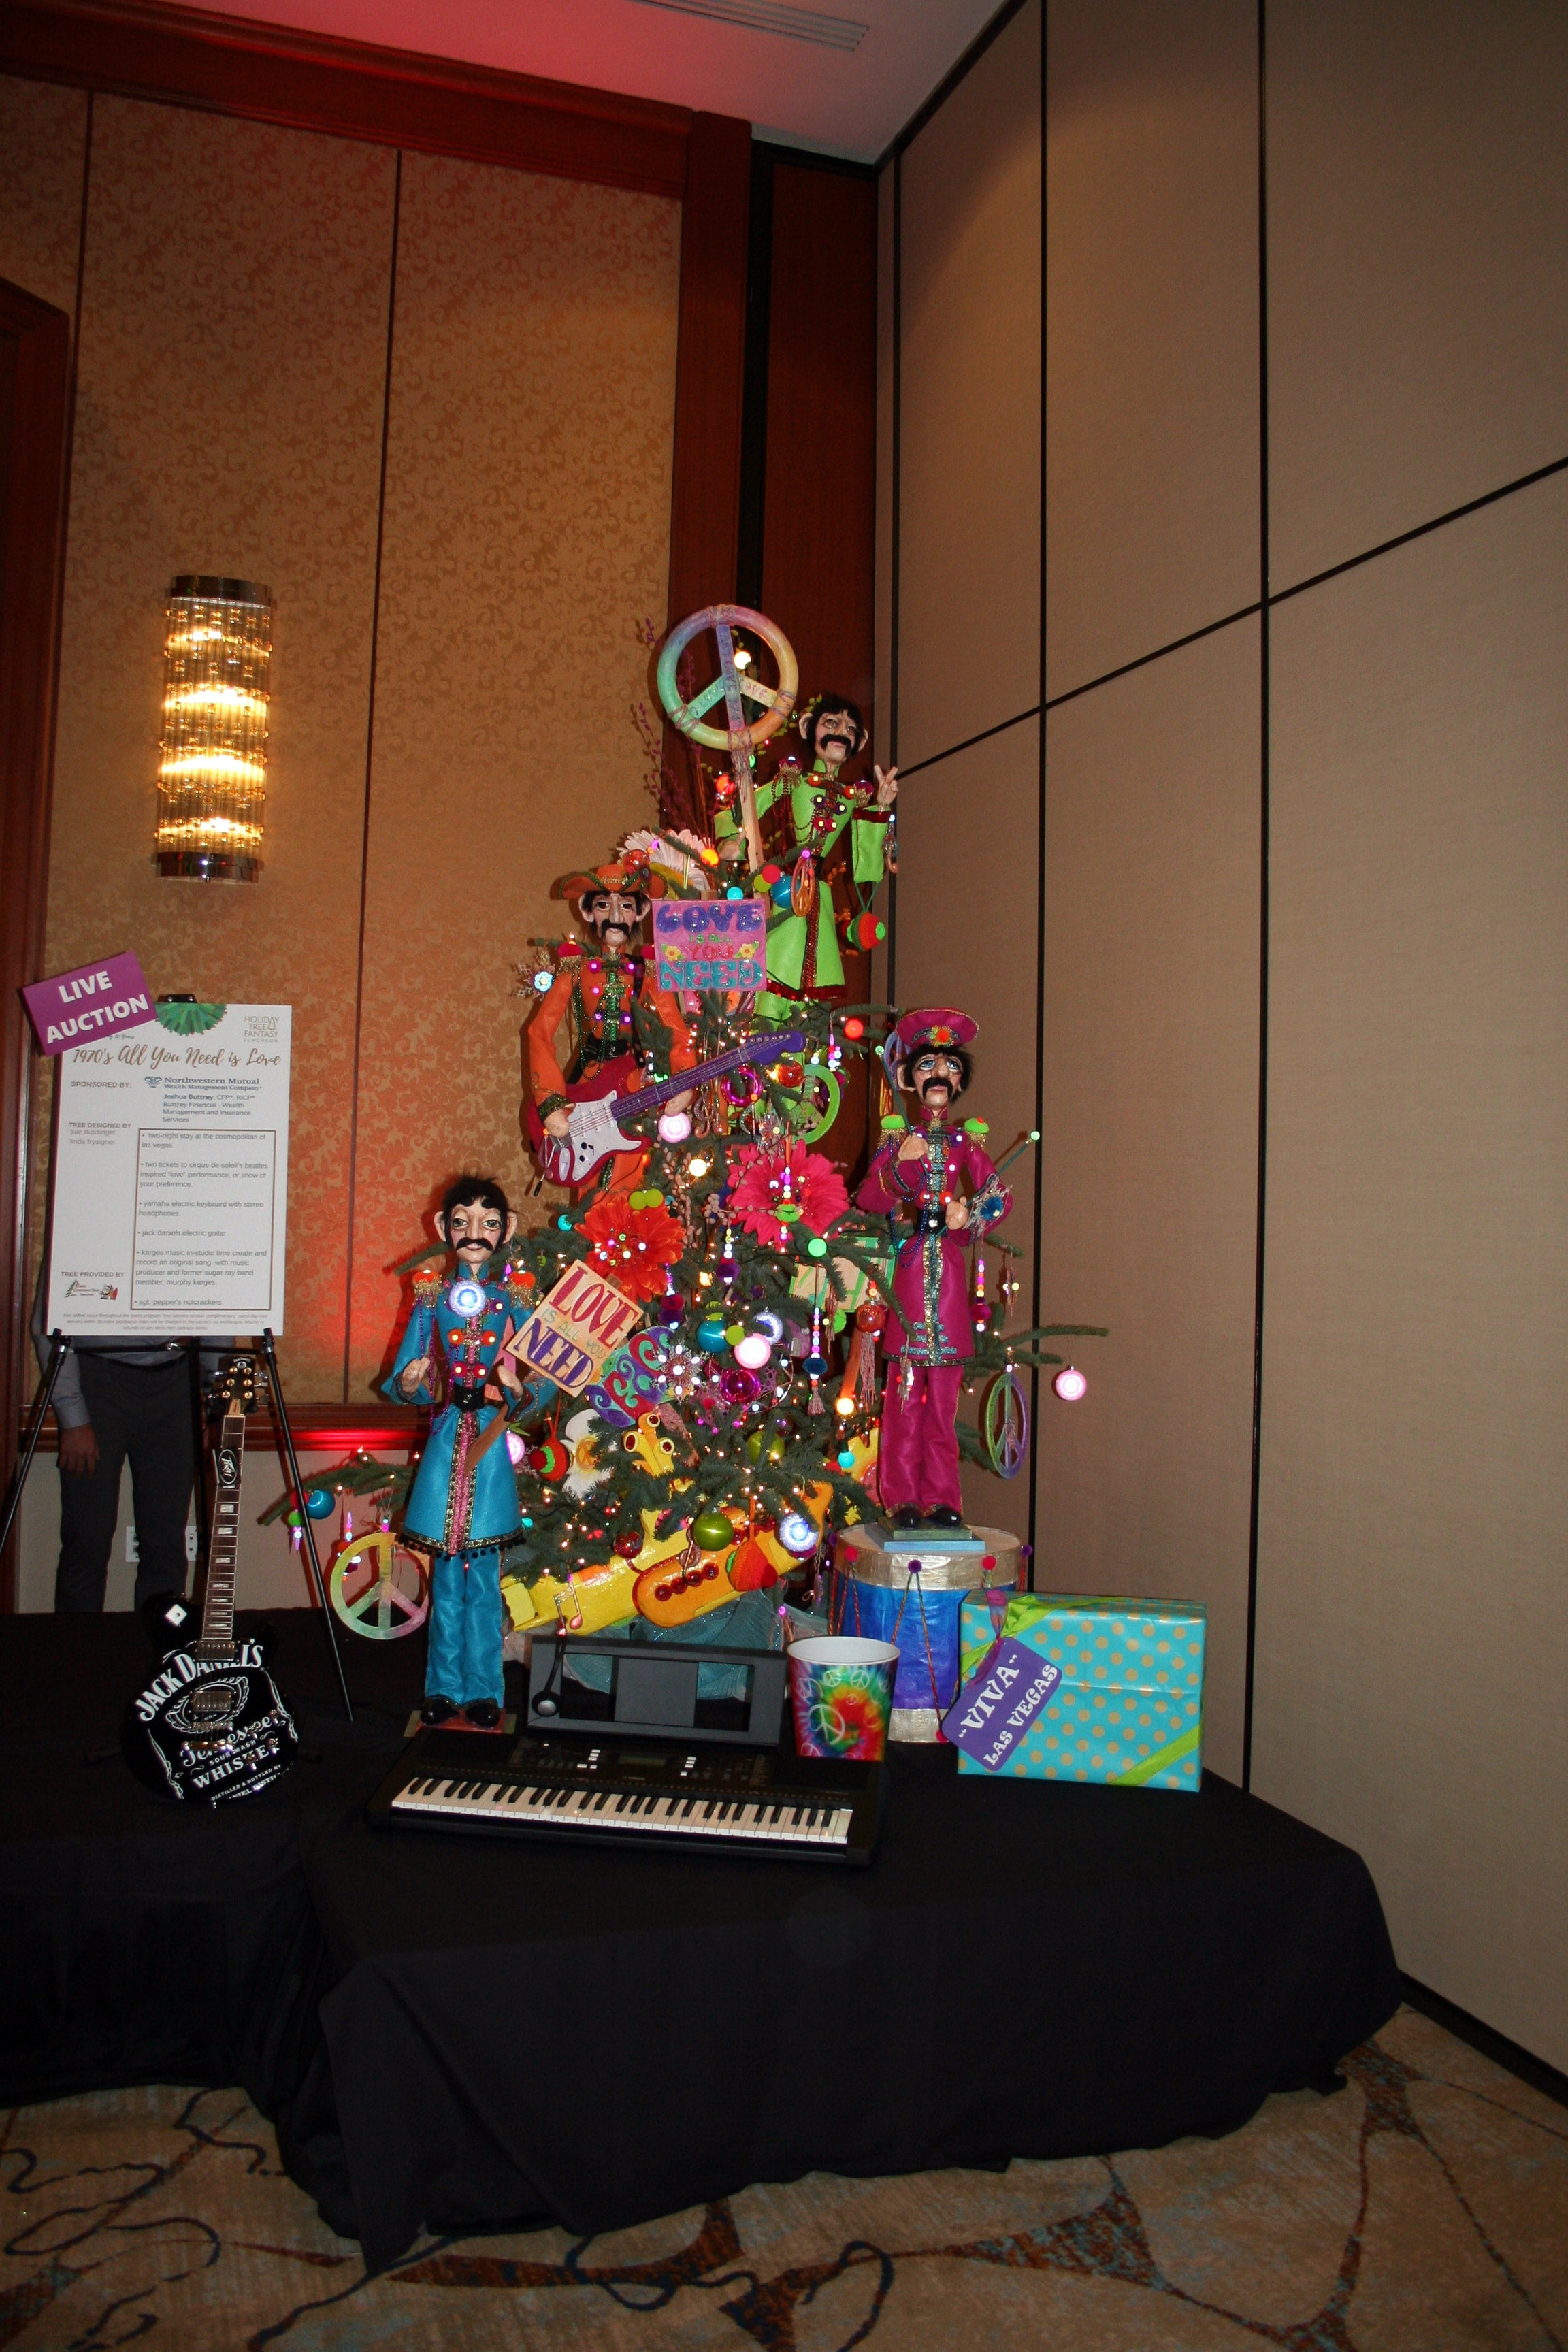 A 70's themed Christmas tree decorated with dolls and musical item, next to a sign labeled as live auction item